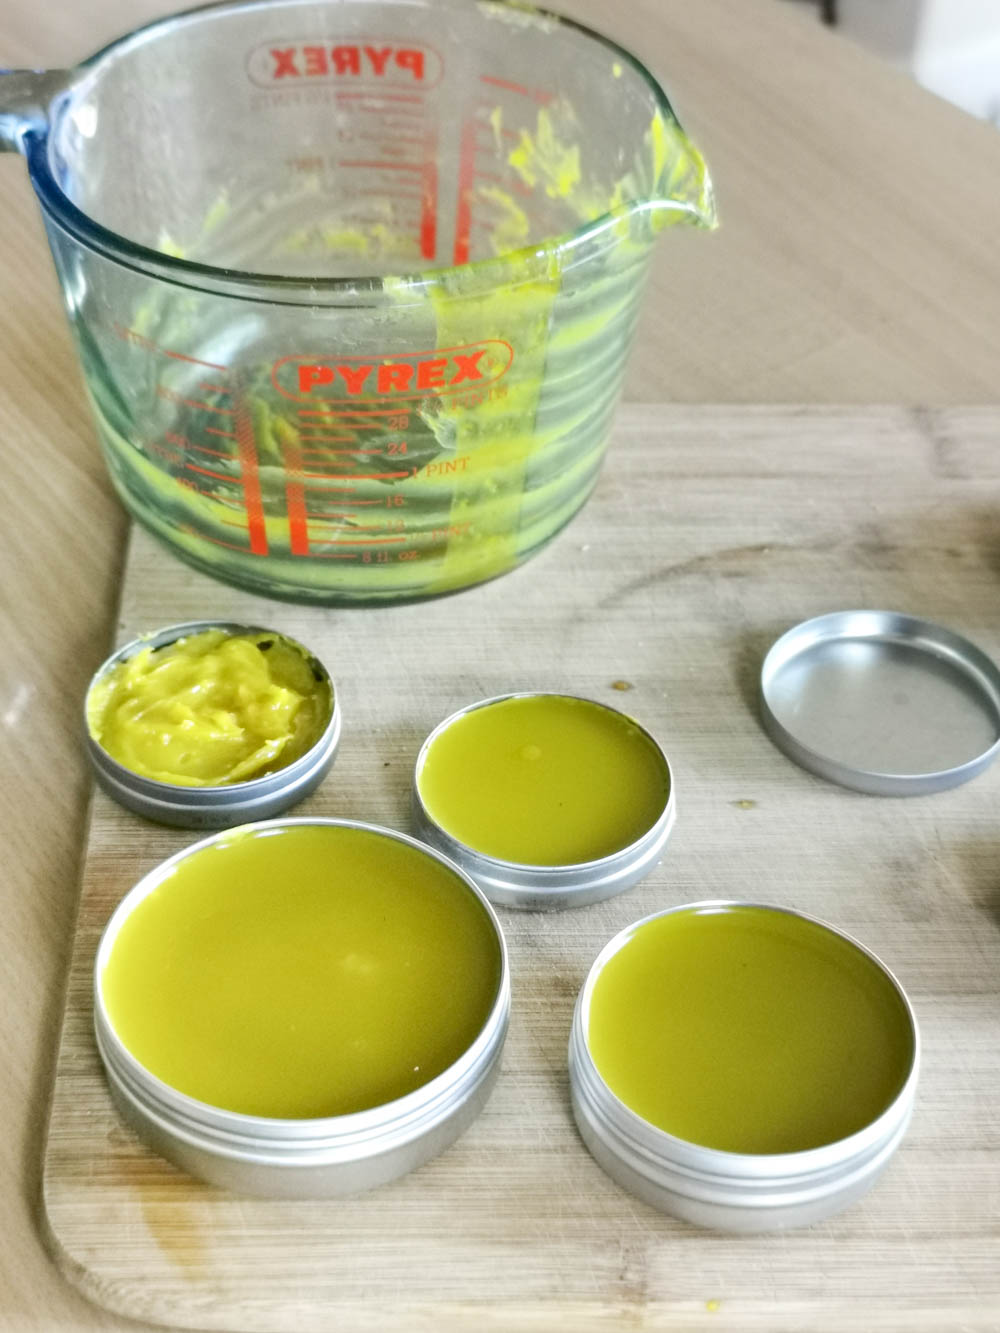 Calendula salve being poured into recycled tins.